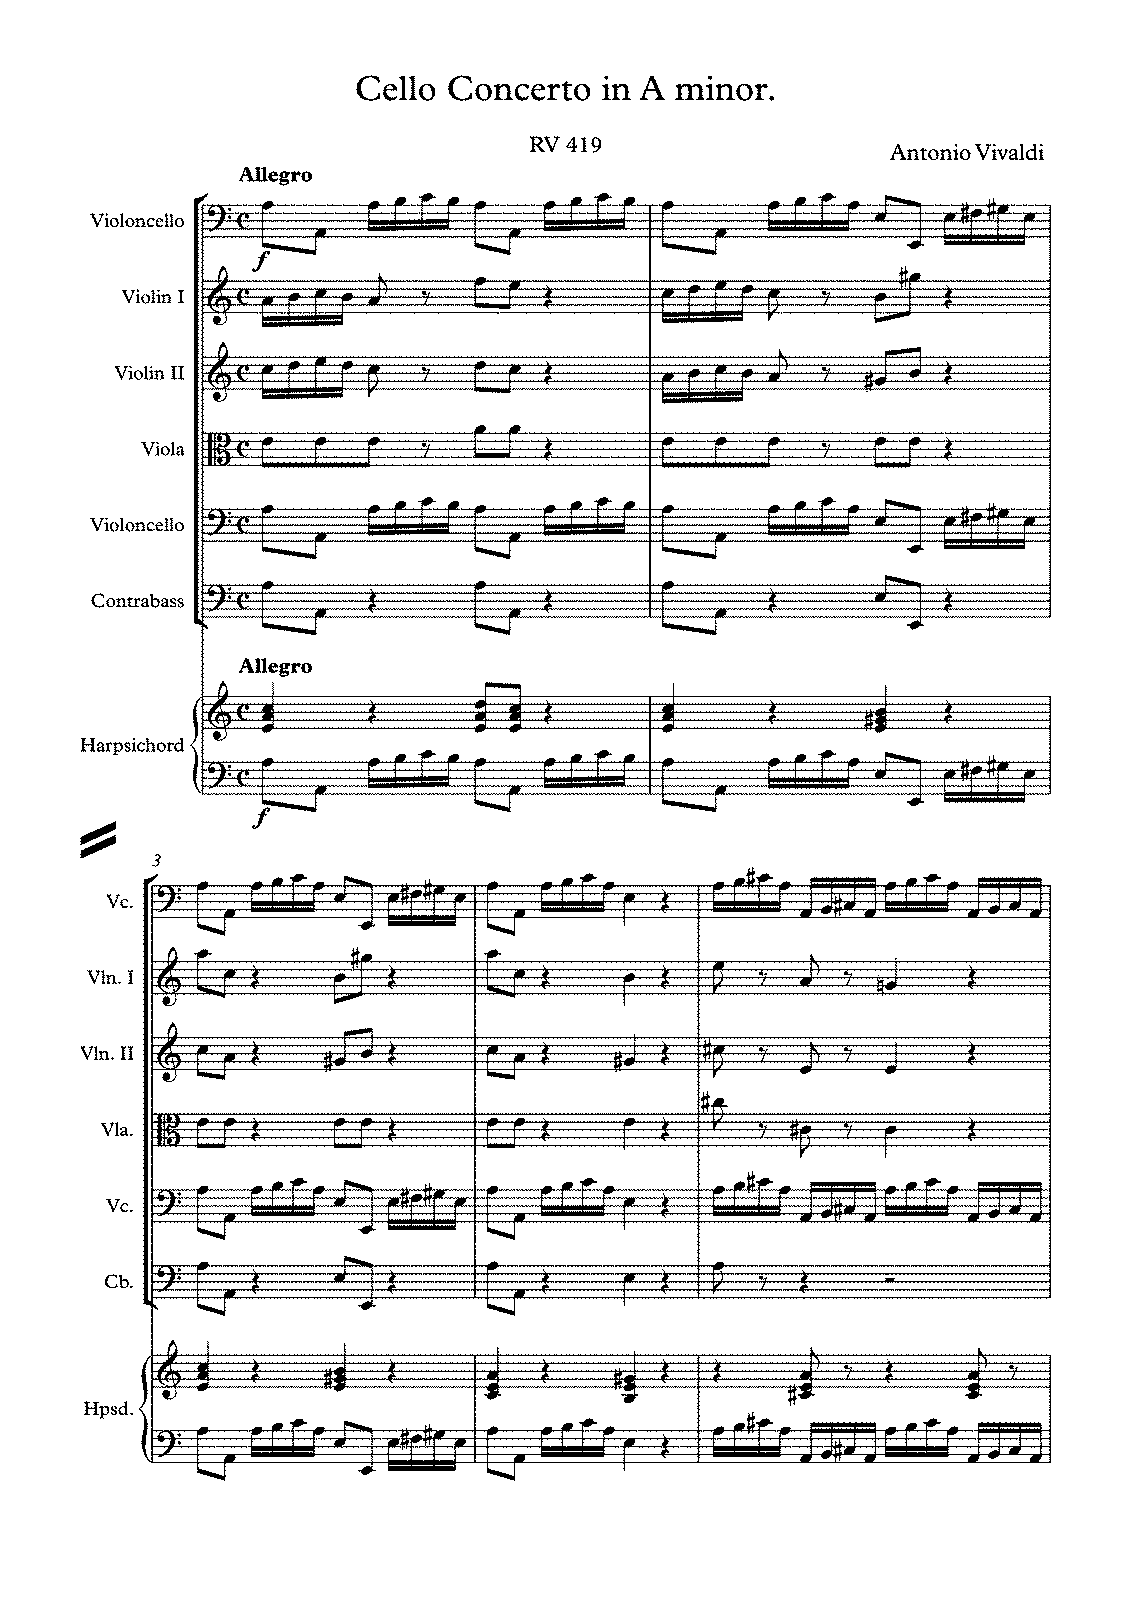 PMLP431151-Antonio Vivaldi - Cello Concerto in A minor, RV 419.pdf